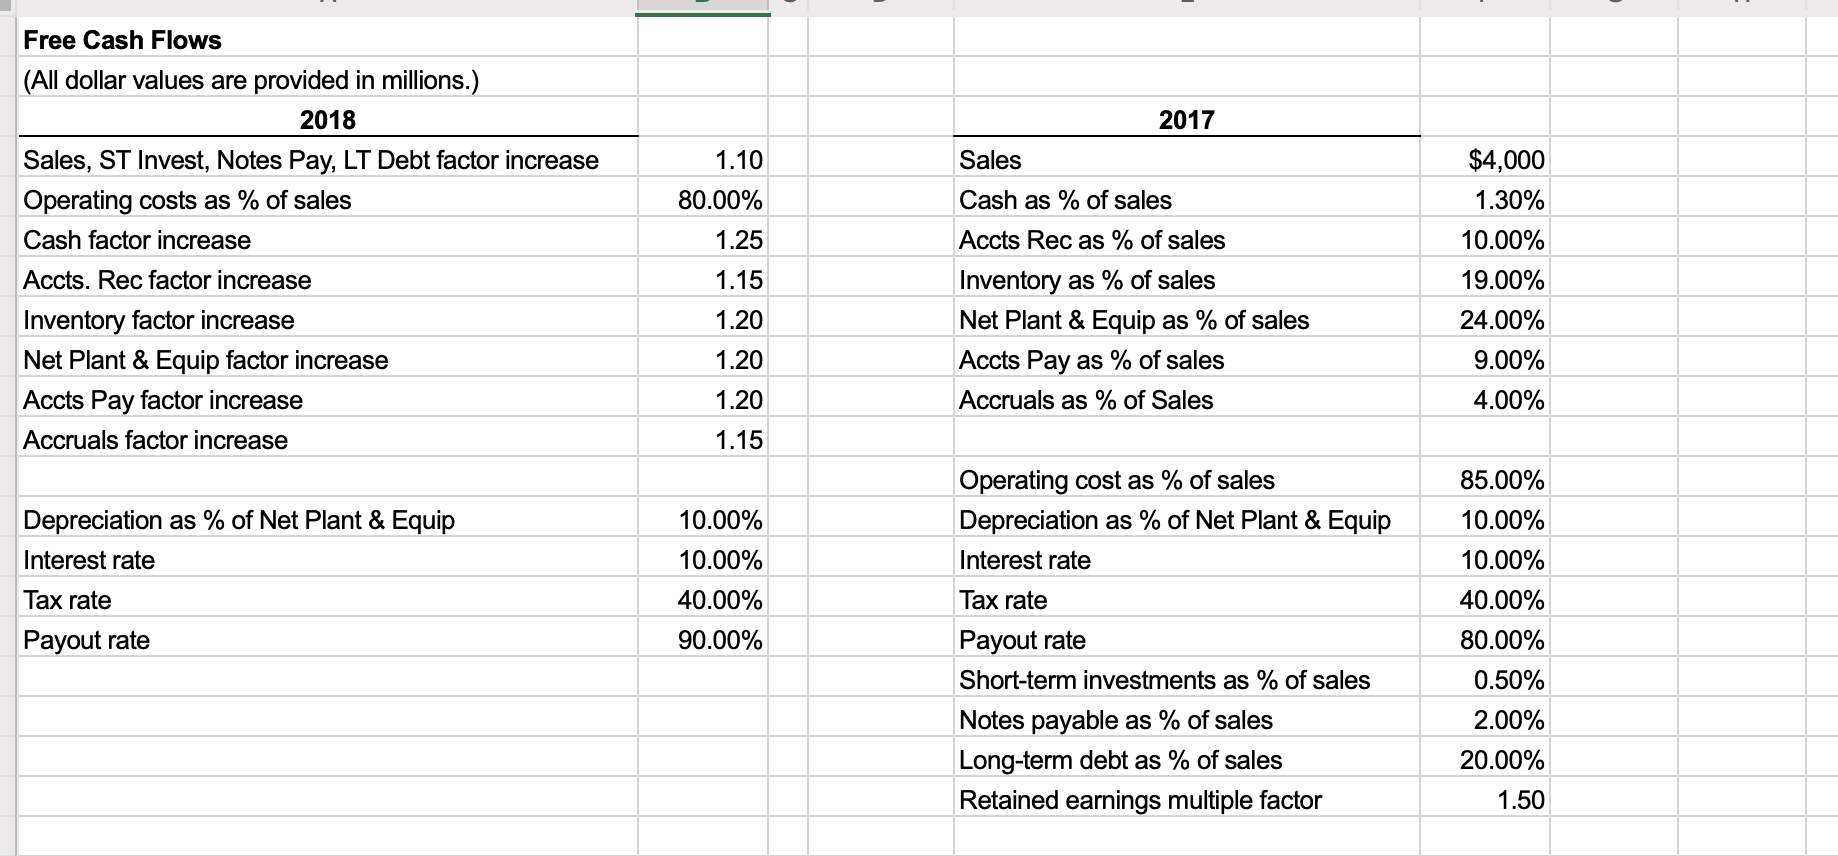 2017 Free Cash Flows (All dollar values are provided in millions.) 2018 Sales, ST Invest, Notes Pay, LT Debt factor increase